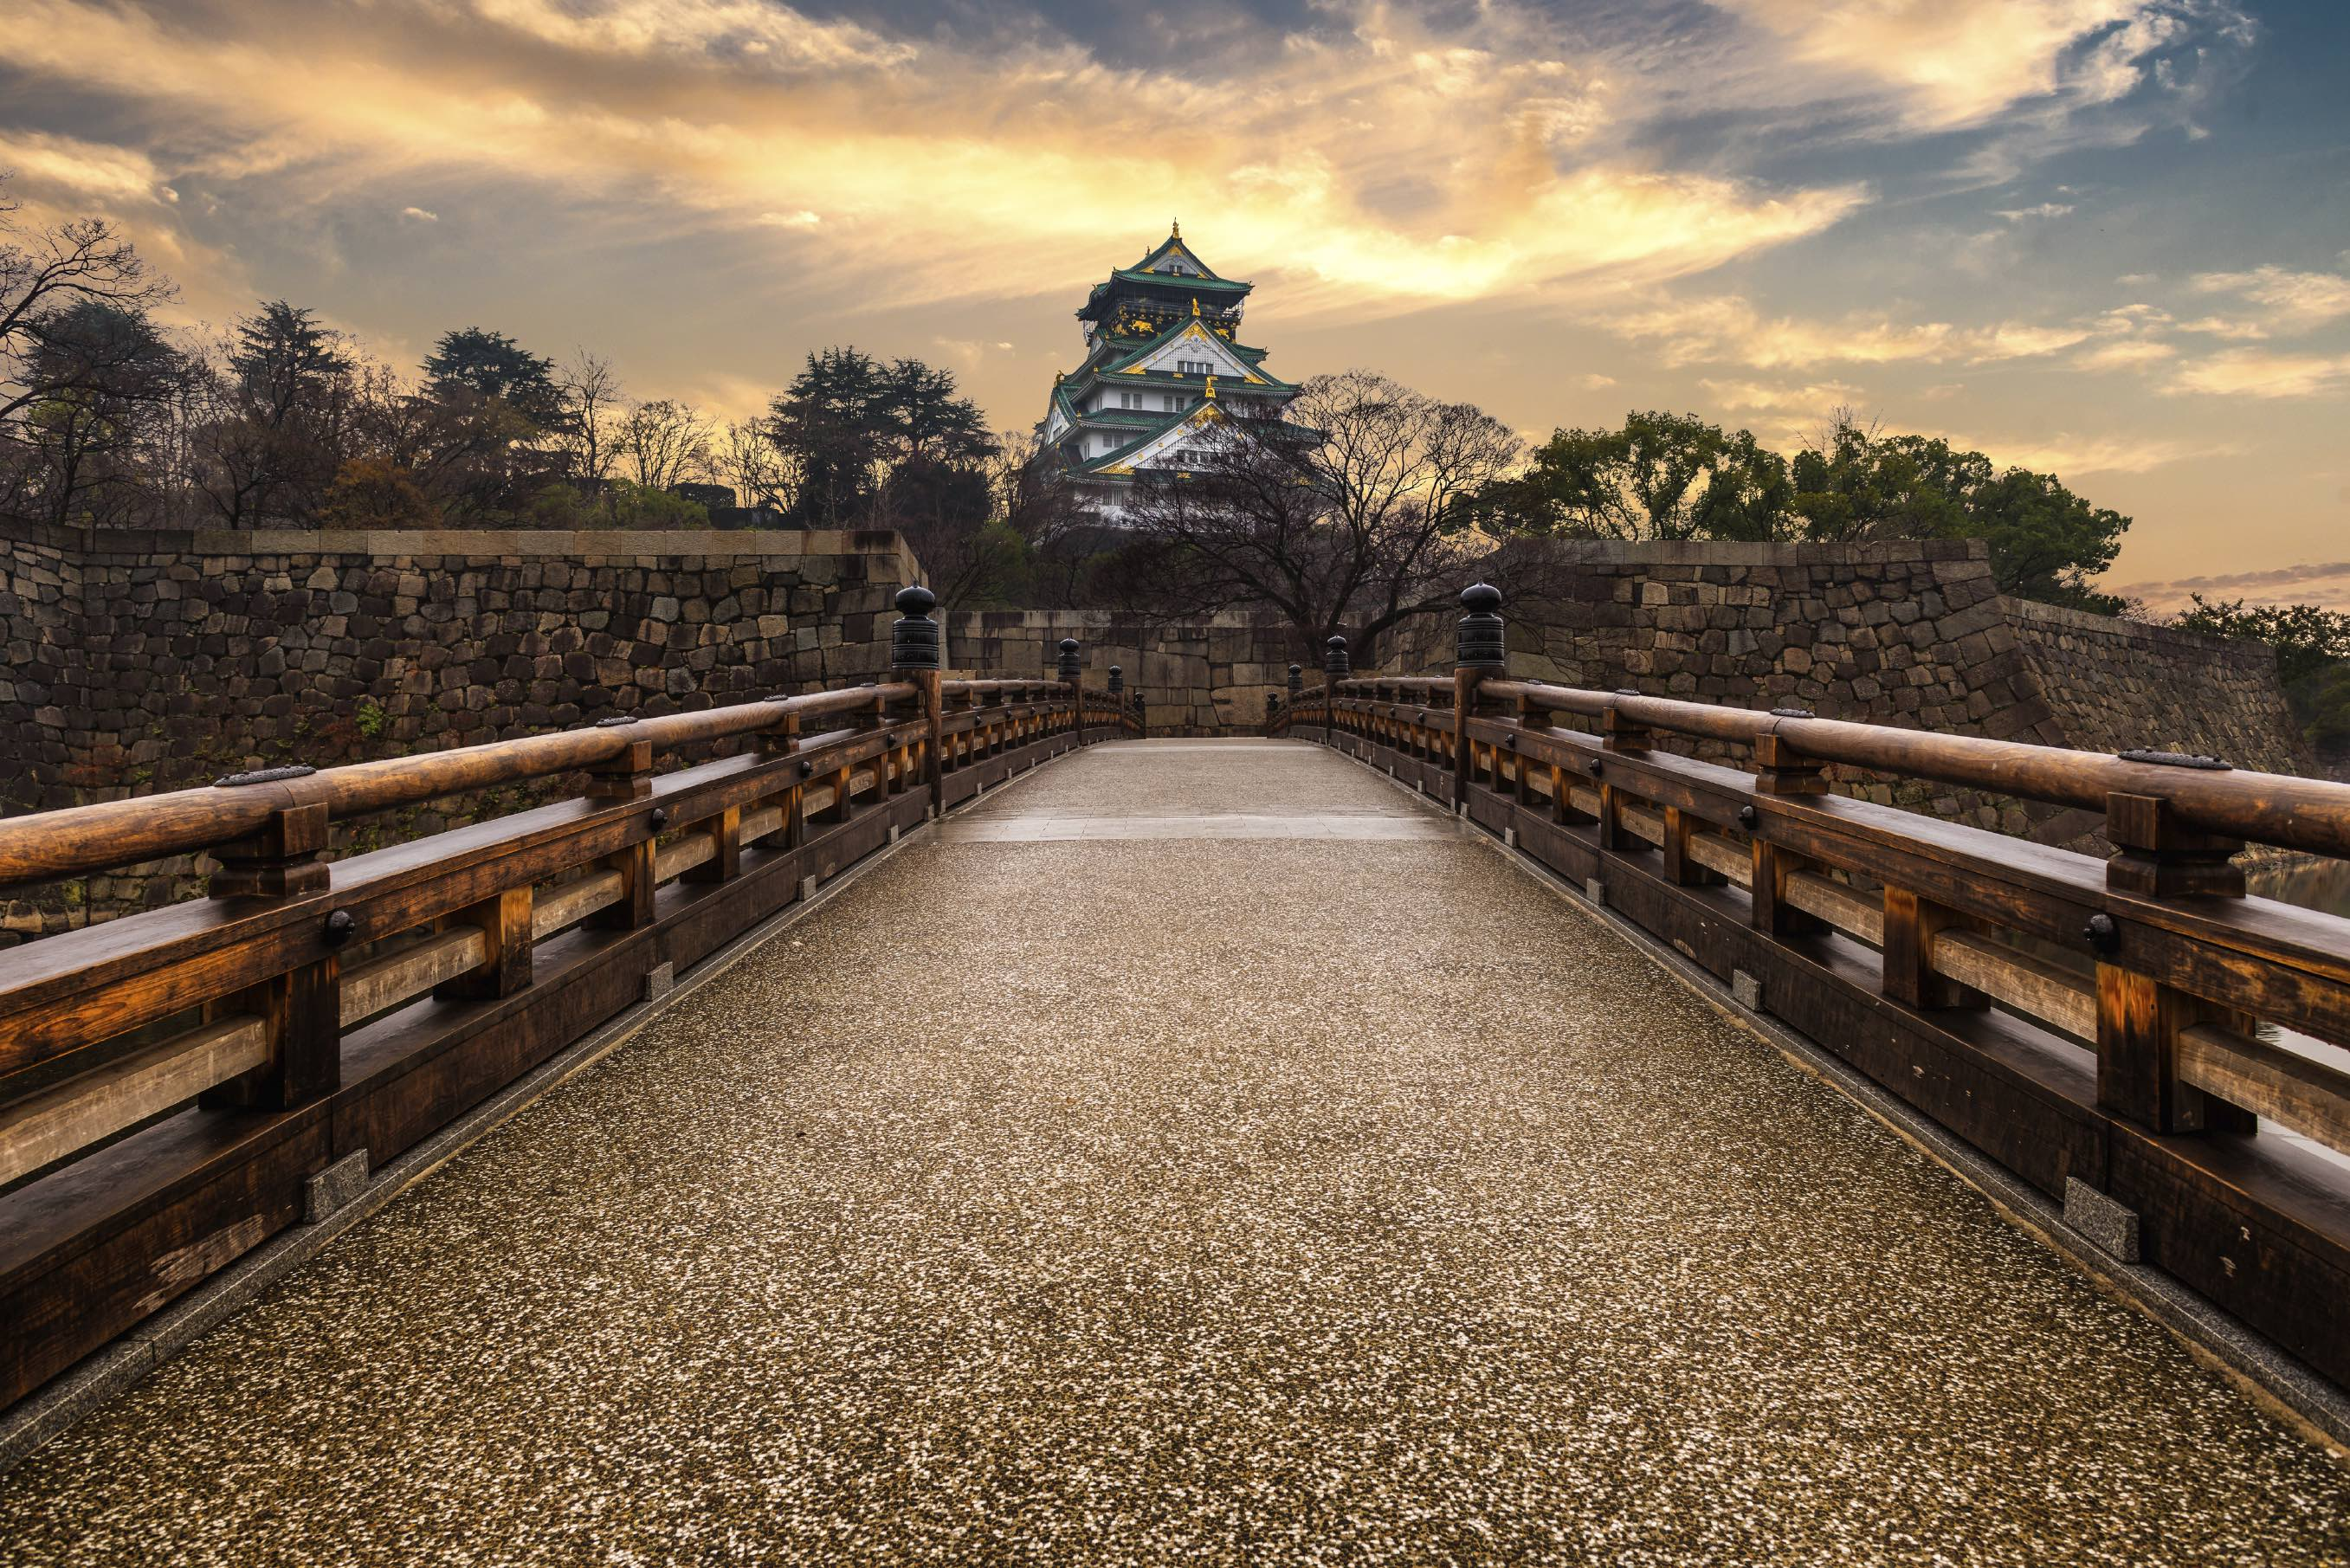 Visit The Grand Osaka Castle And Park